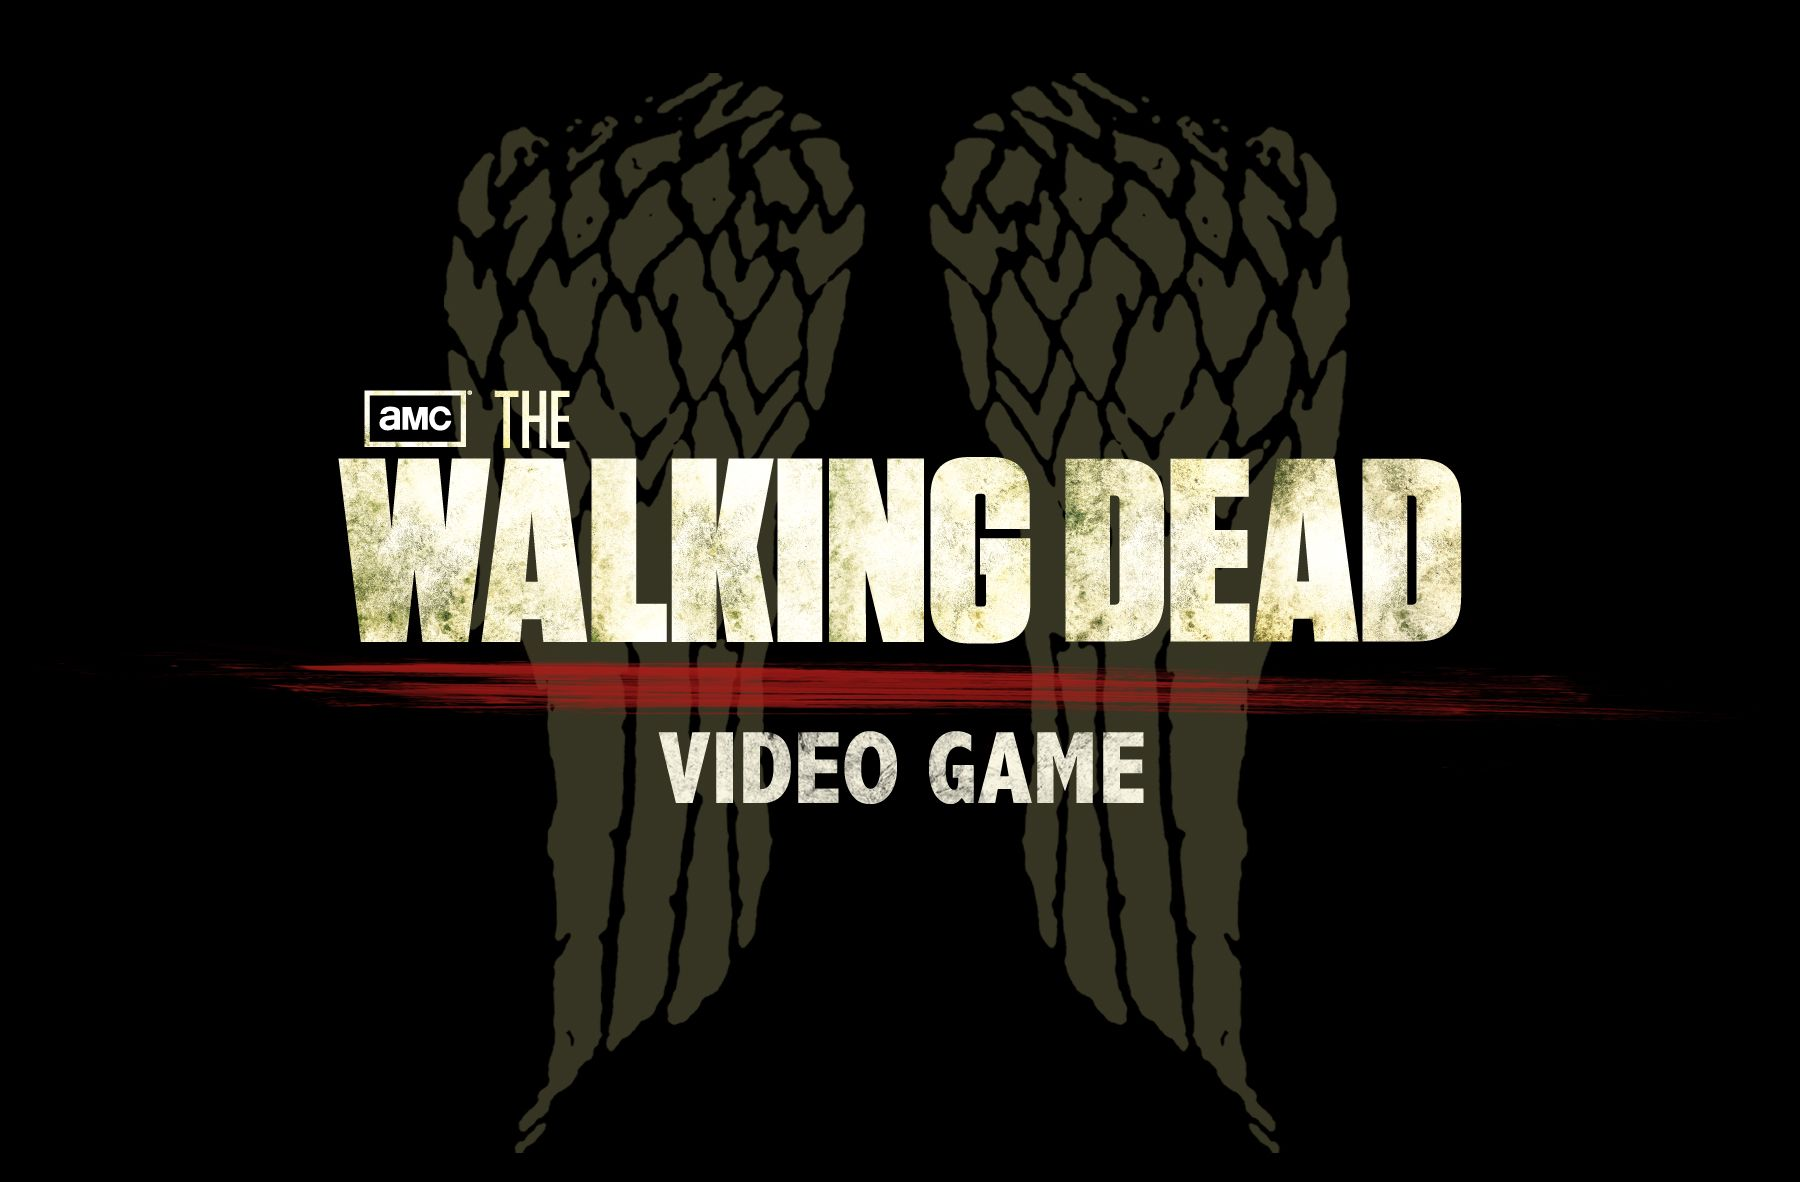 Trailer for Walking Dead Video Game